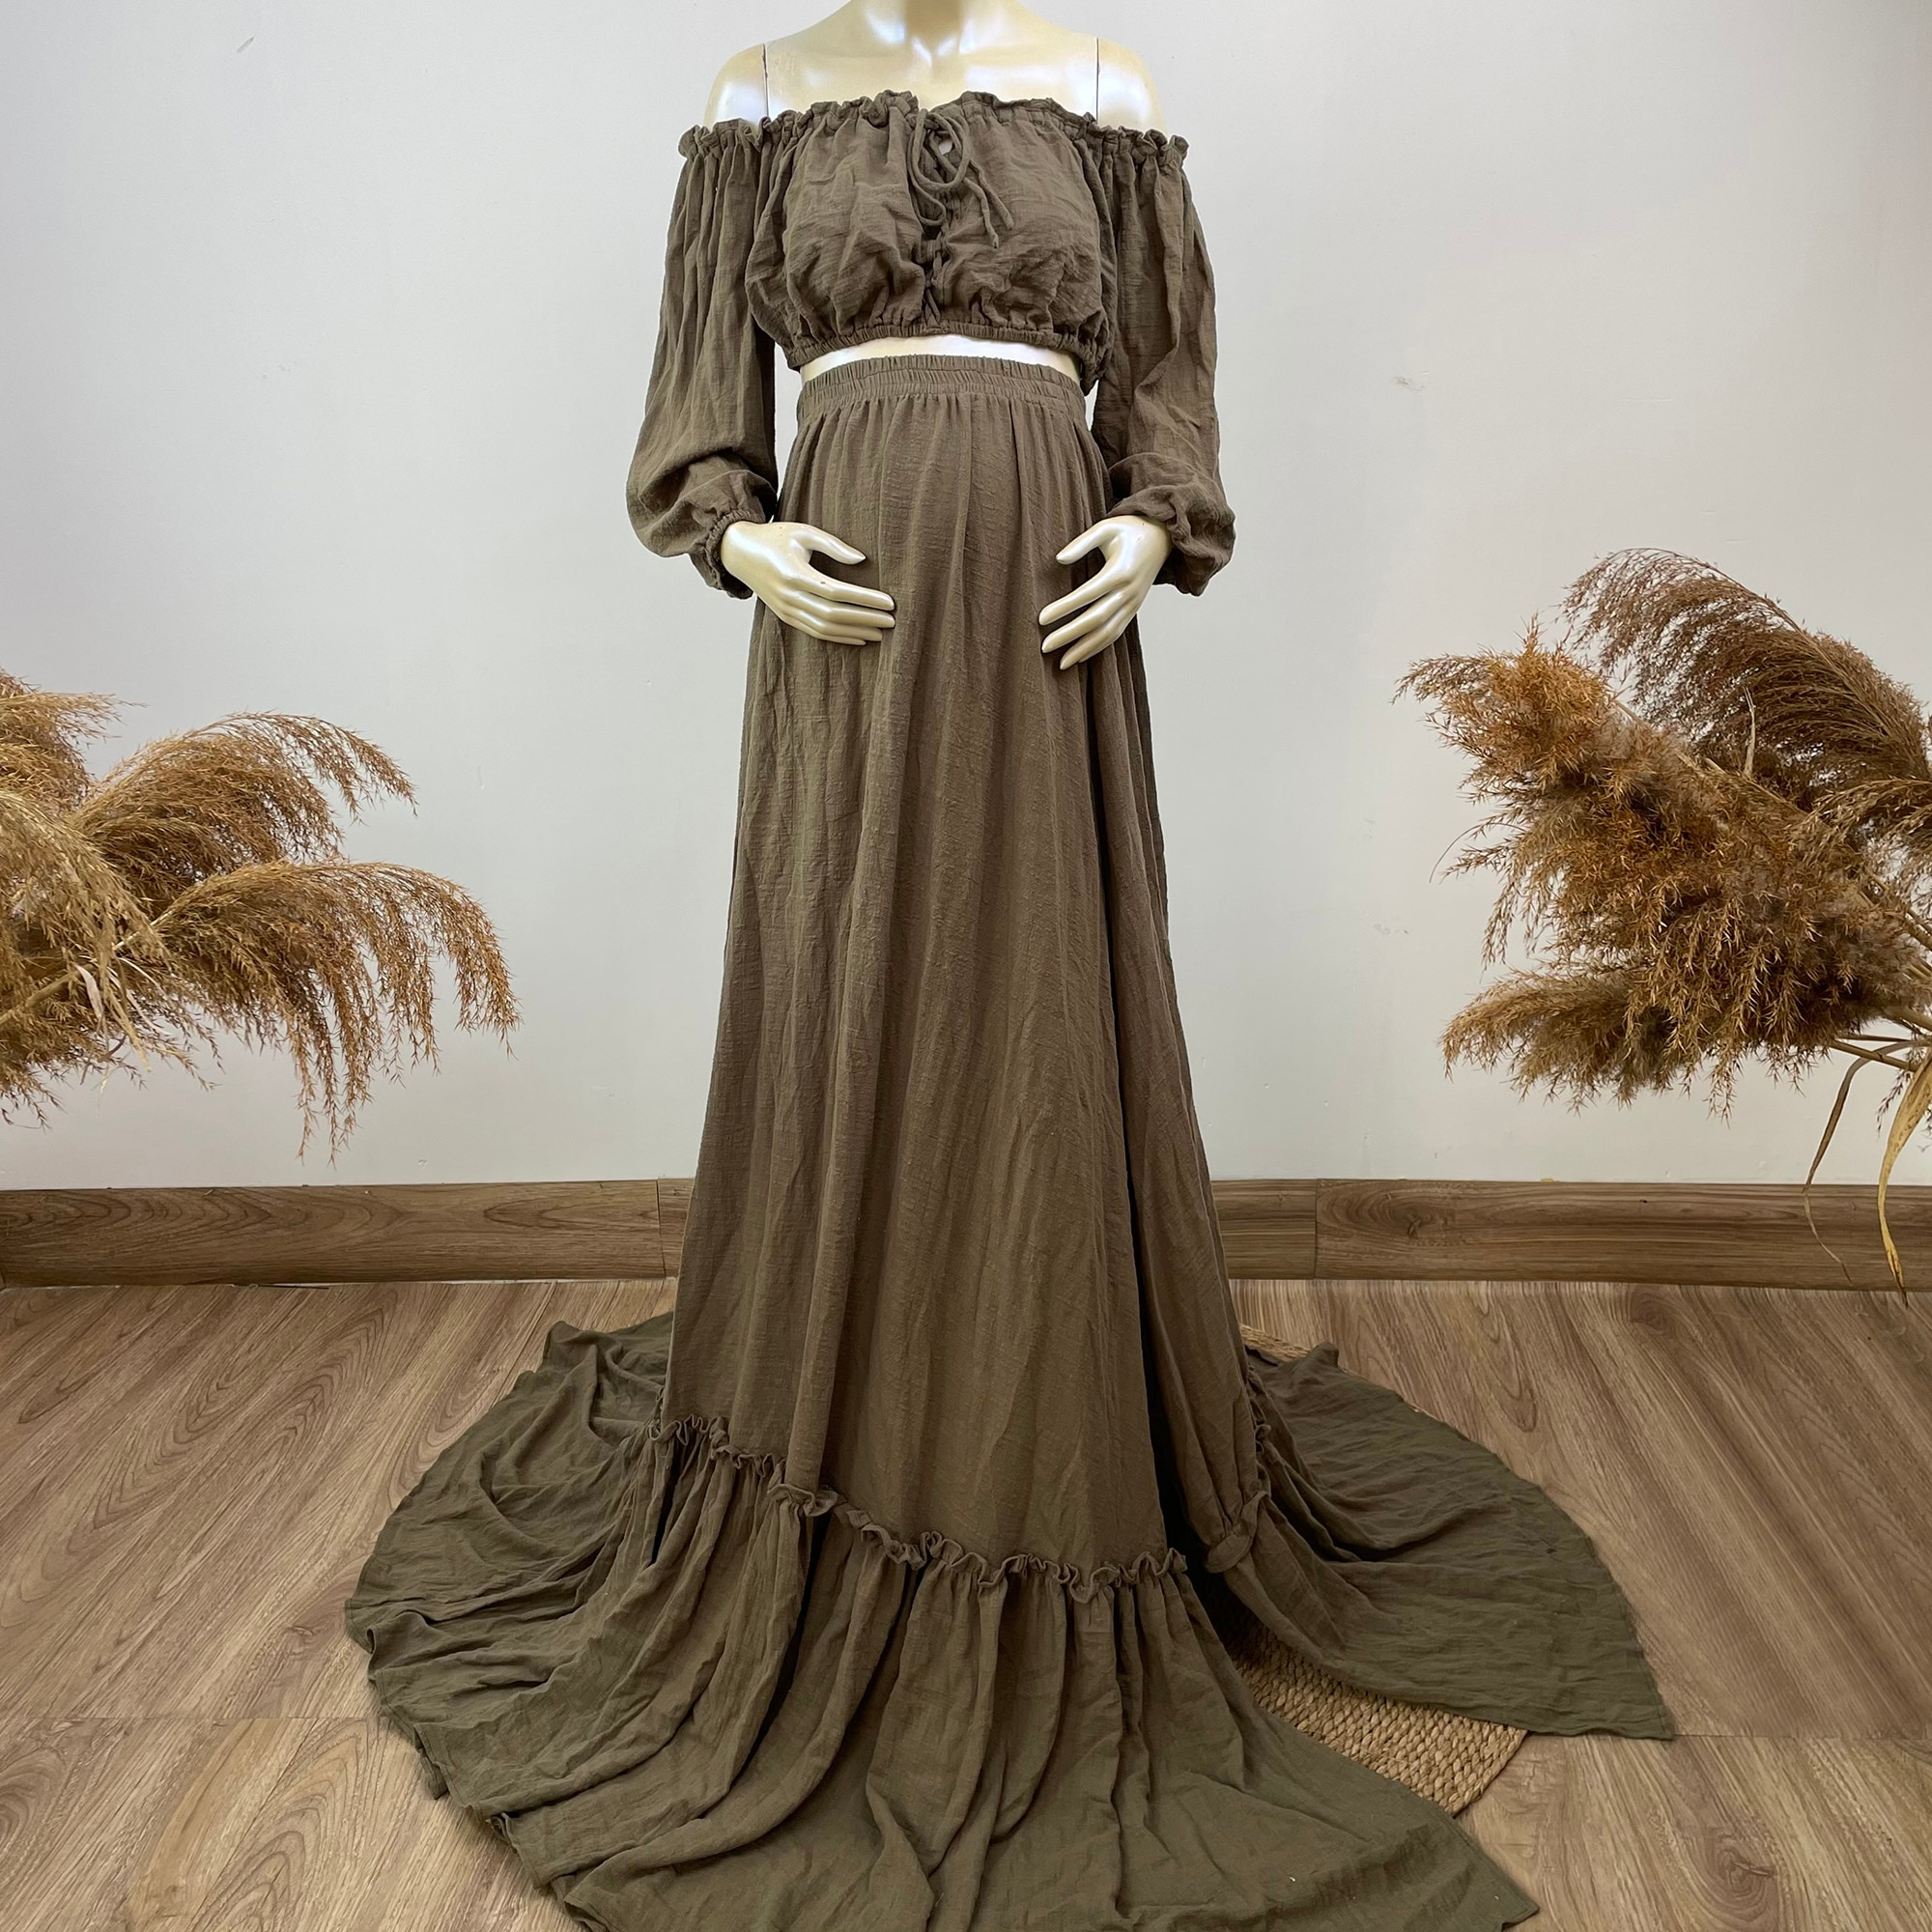 A Suit Cotton Kaftan Photo Shoot Props Full Sleeves Robe Maternity Dress Evening Party Costume for Women Photography Accessories enlarge